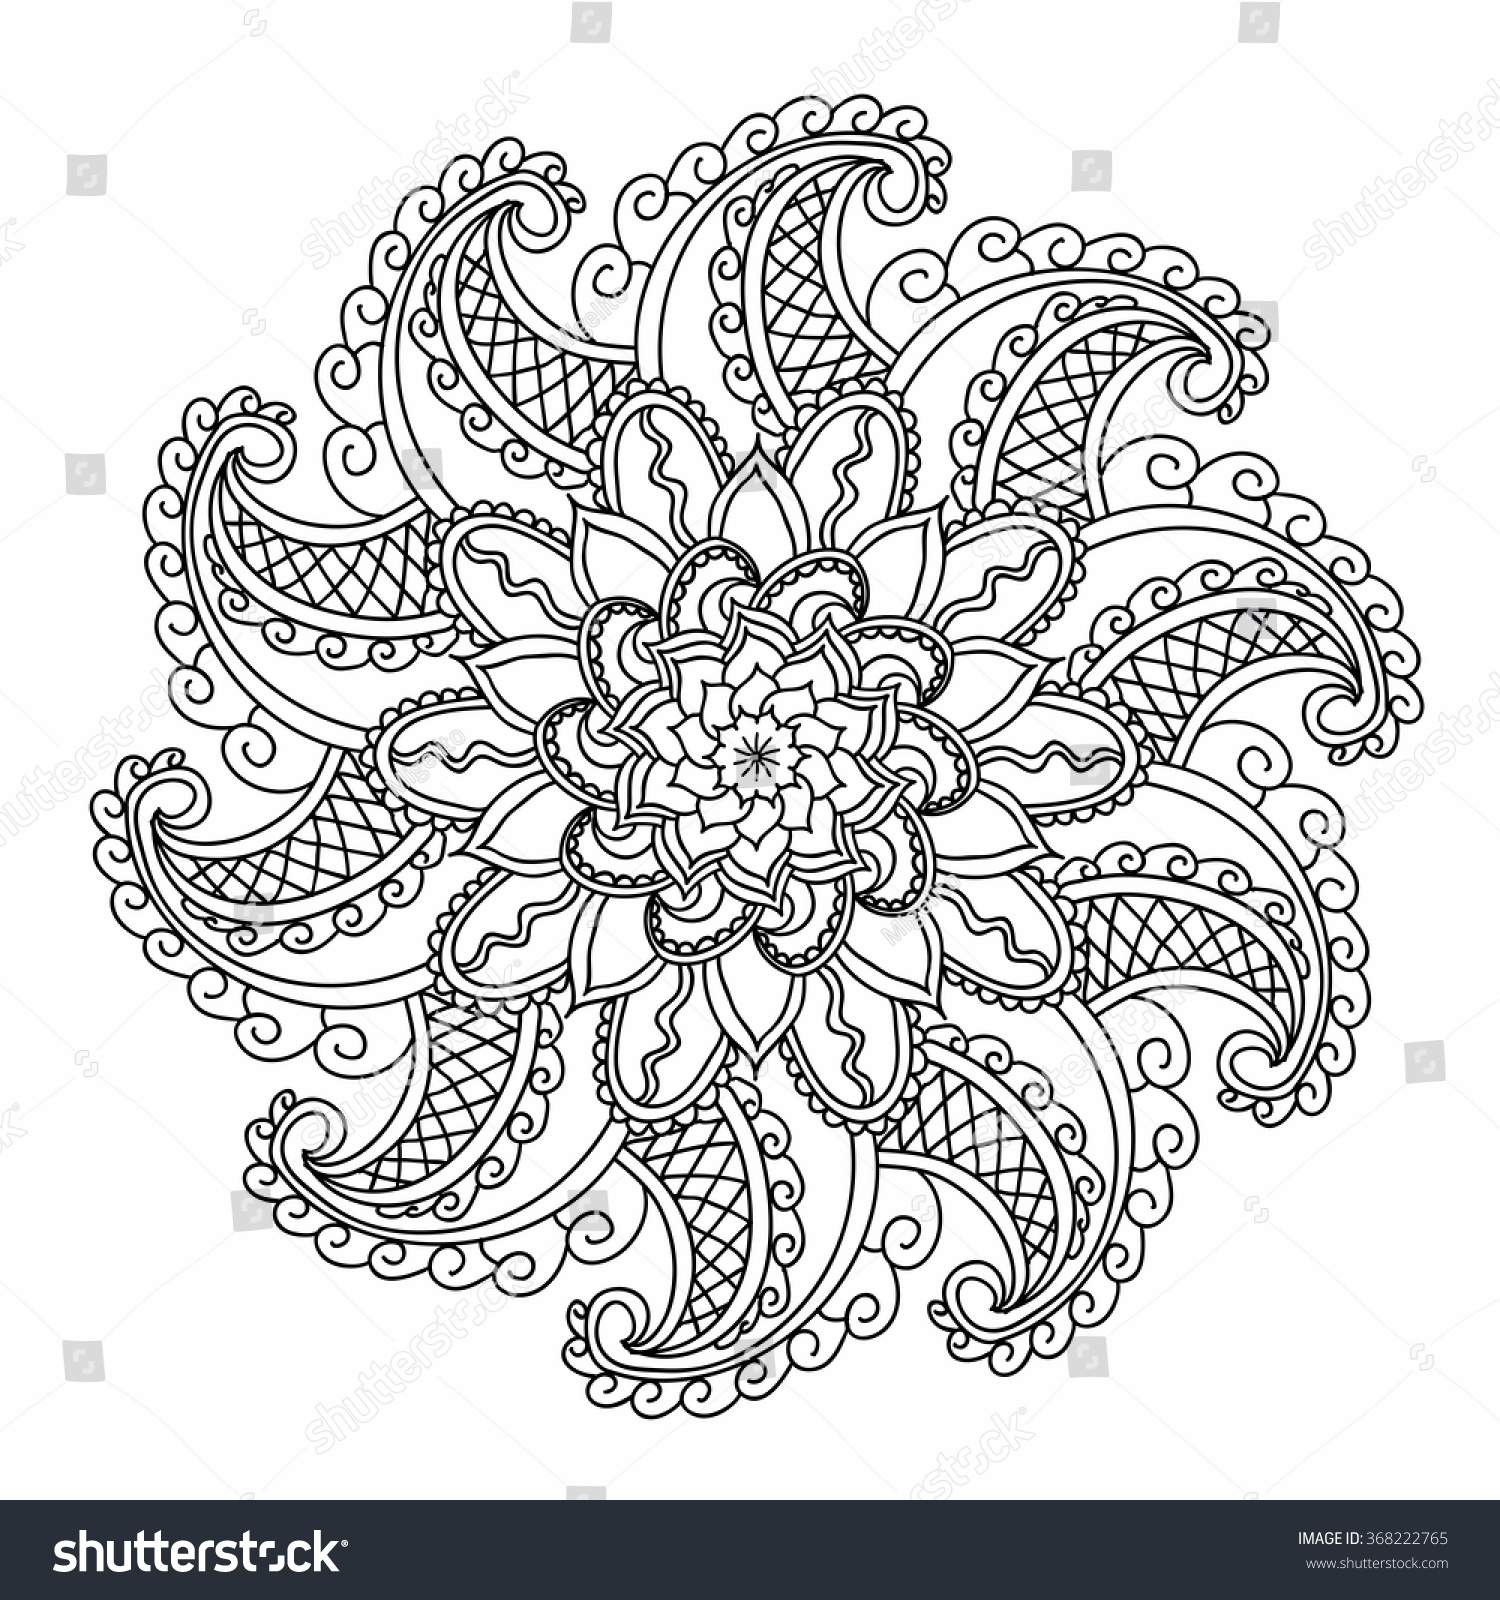 ornamental round pattern with floral elements for smart modern coloring book for adult shirt design - Modern Patterns Coloring Book